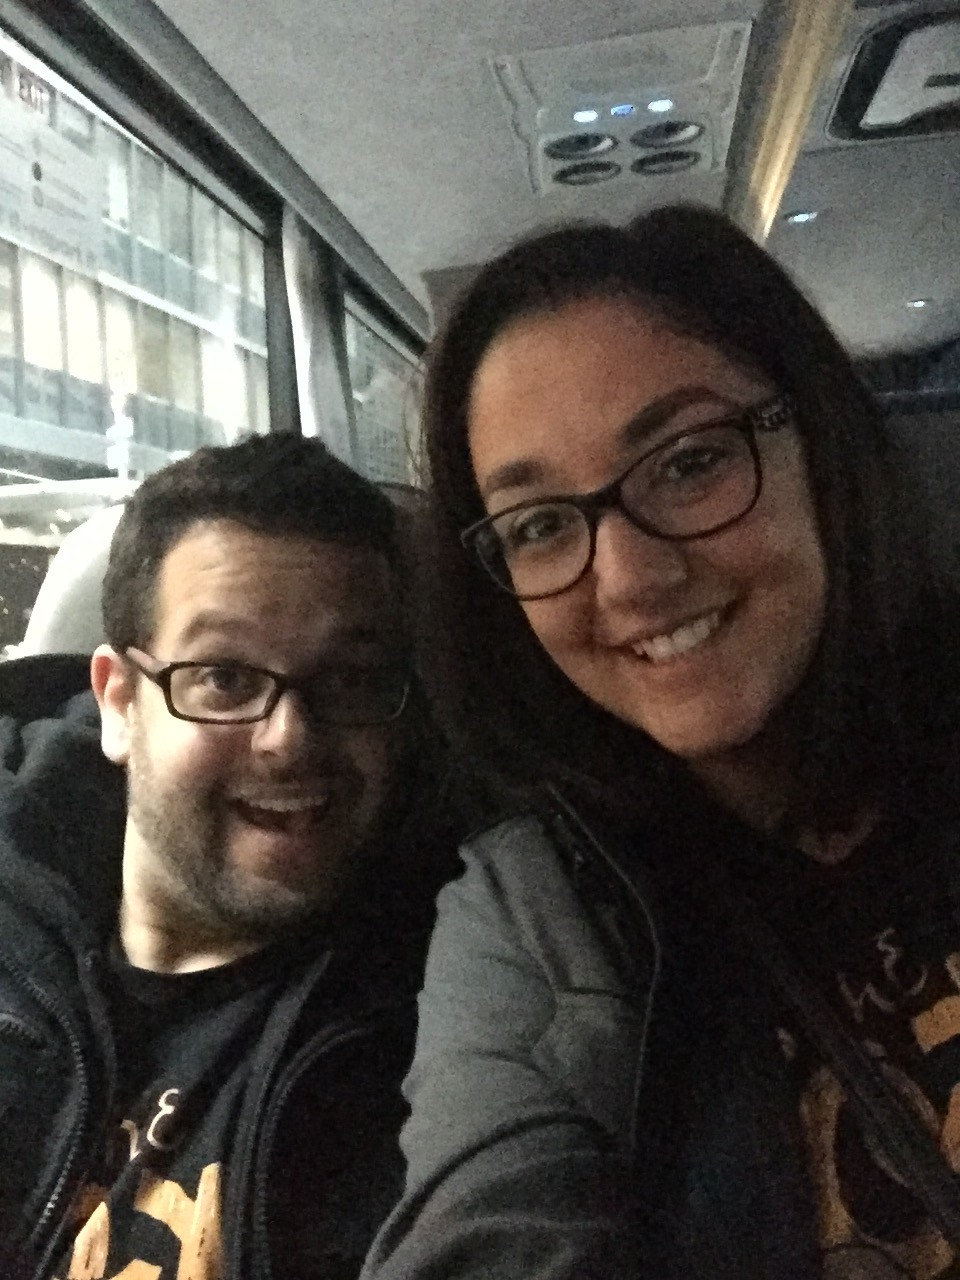 Eve and Andrew on the shuttle